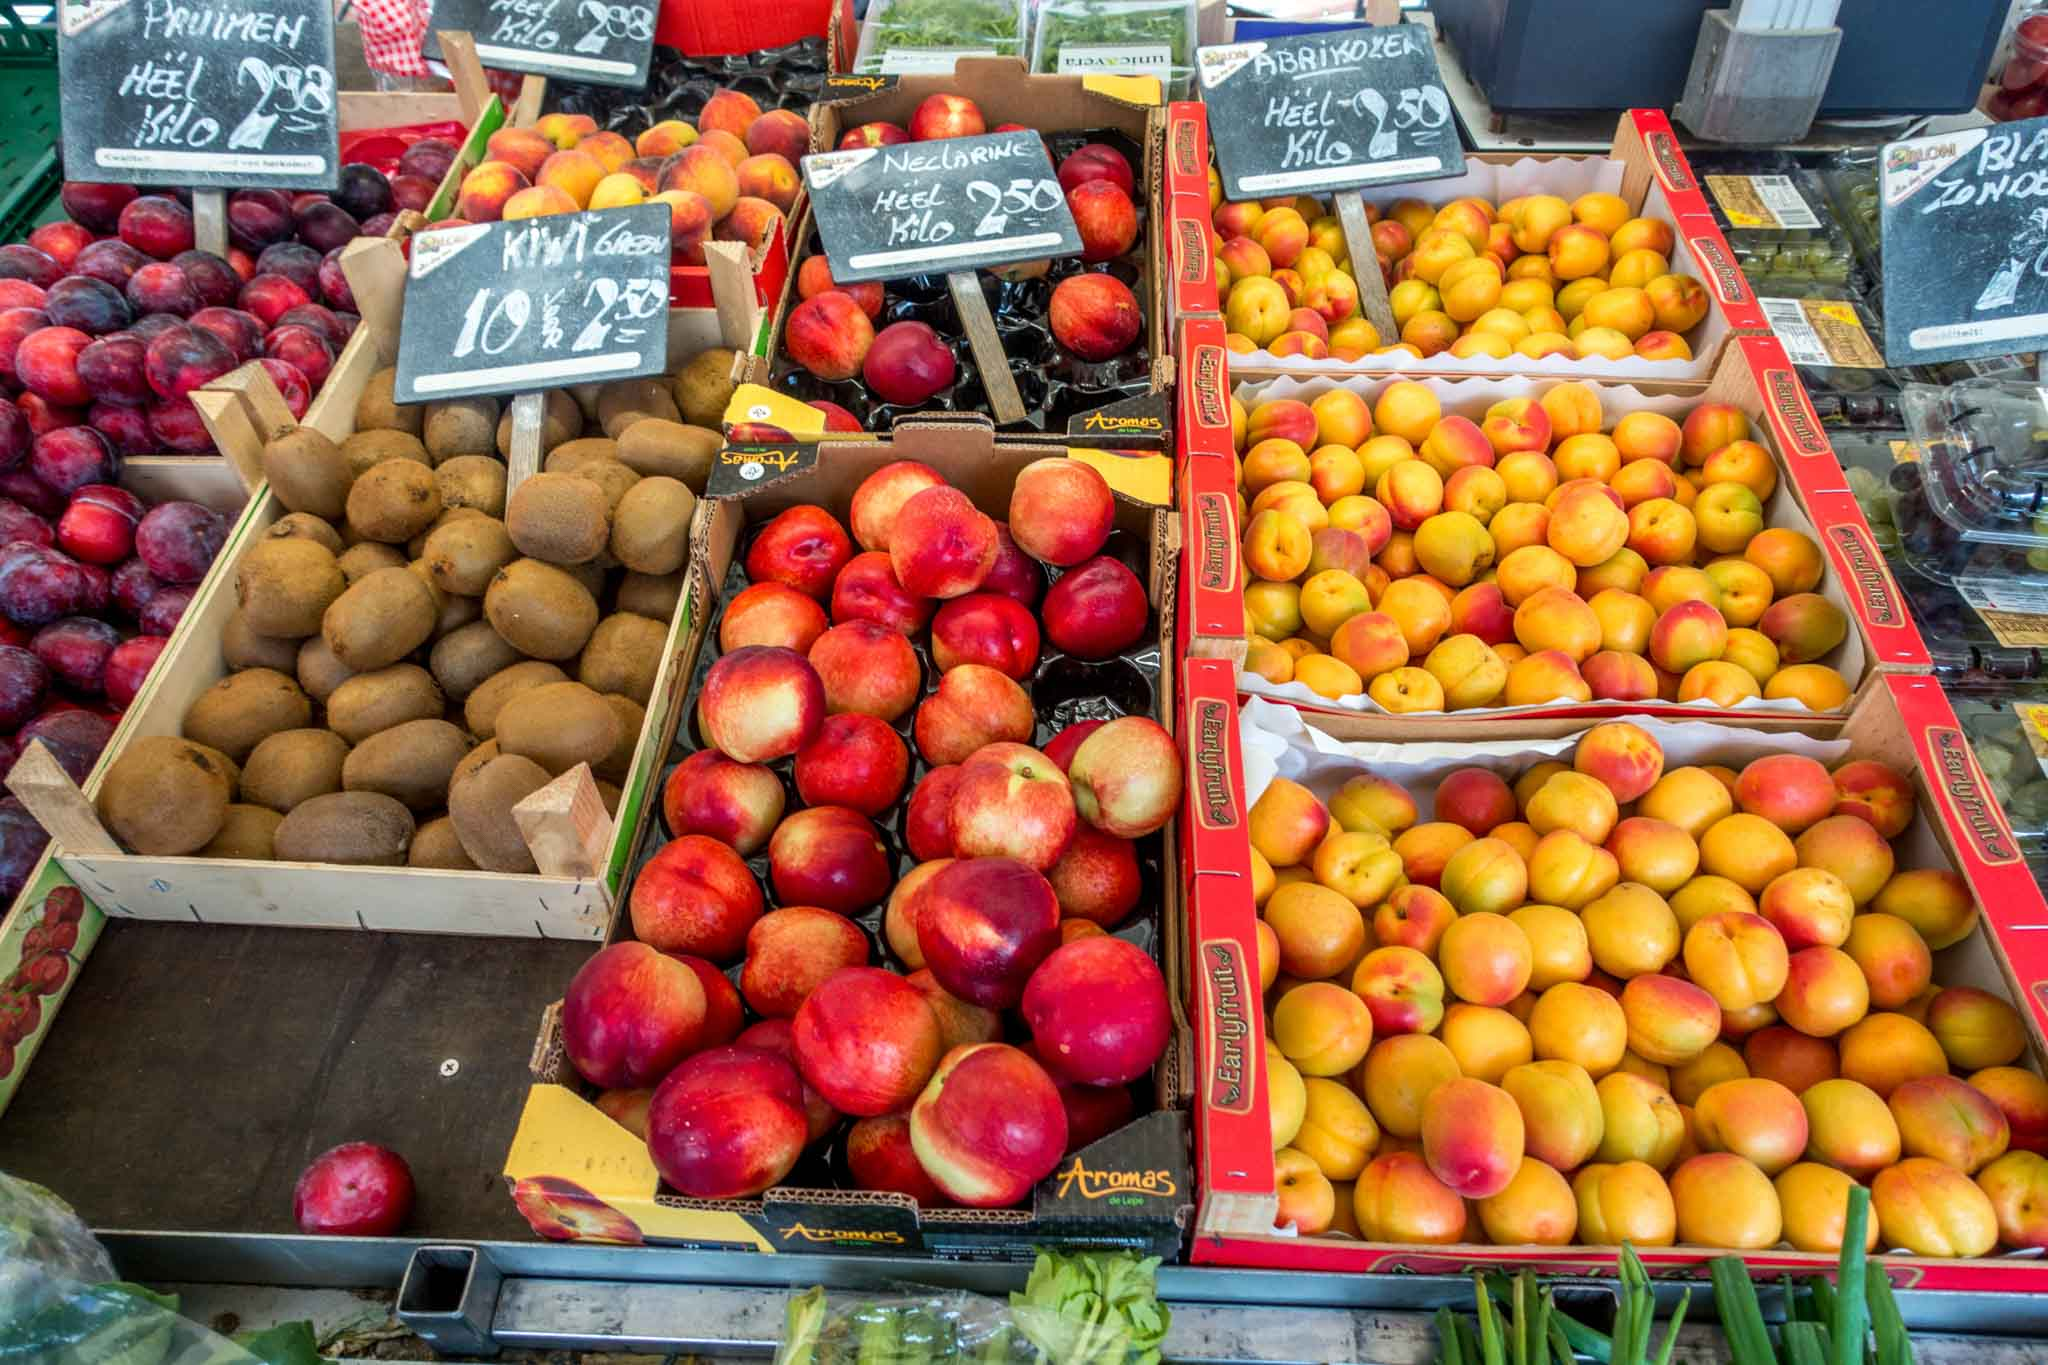 Kiwi and peaches for sale at the market in Gouda, the Netherlands